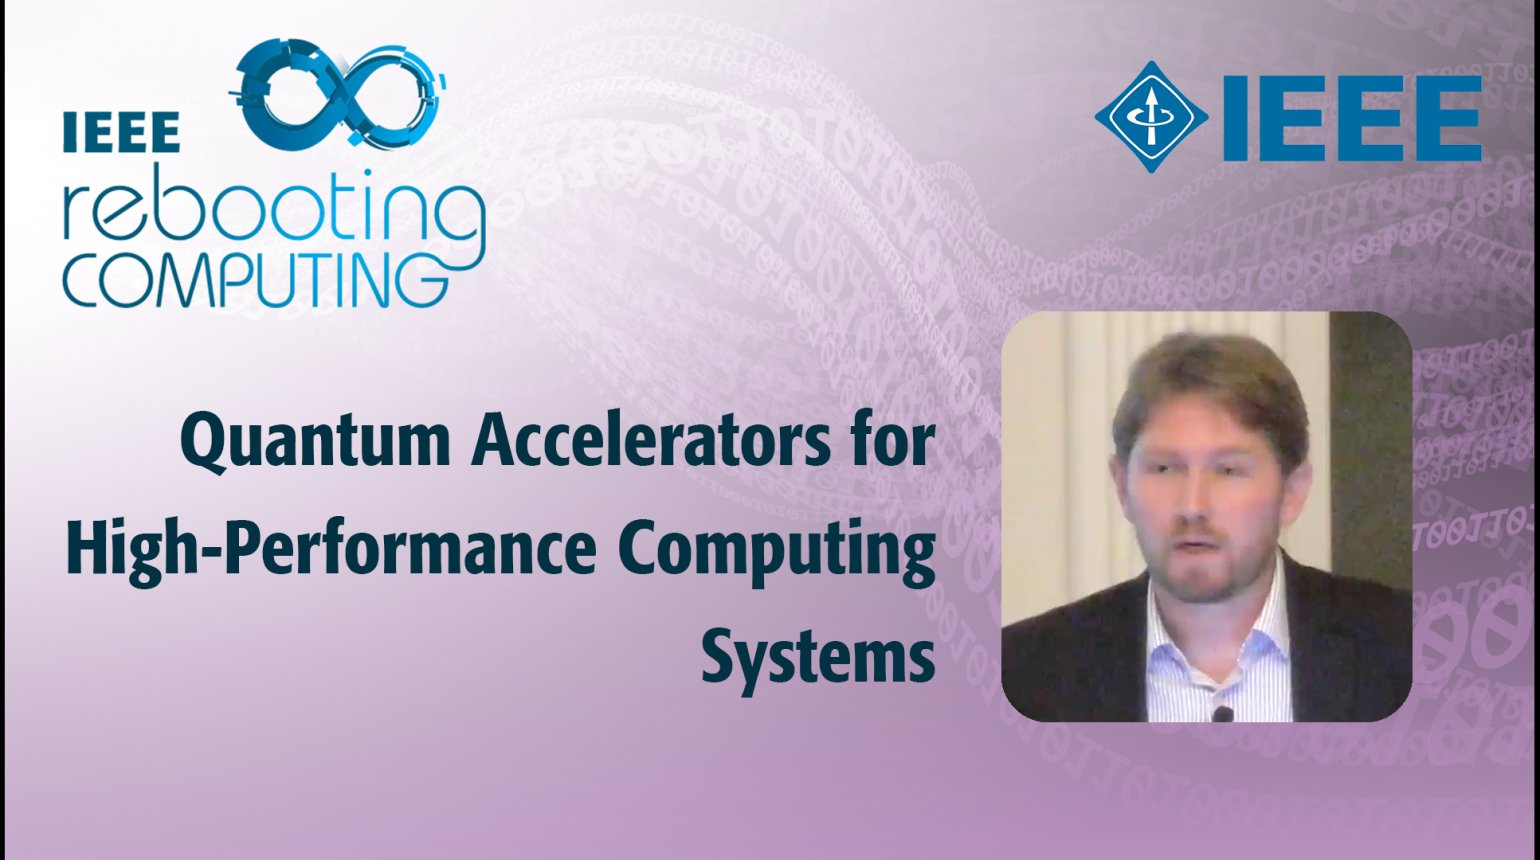 Quantum Accelerators for High-Performance Computing Systems - IEEE Rebooting Computing 2017